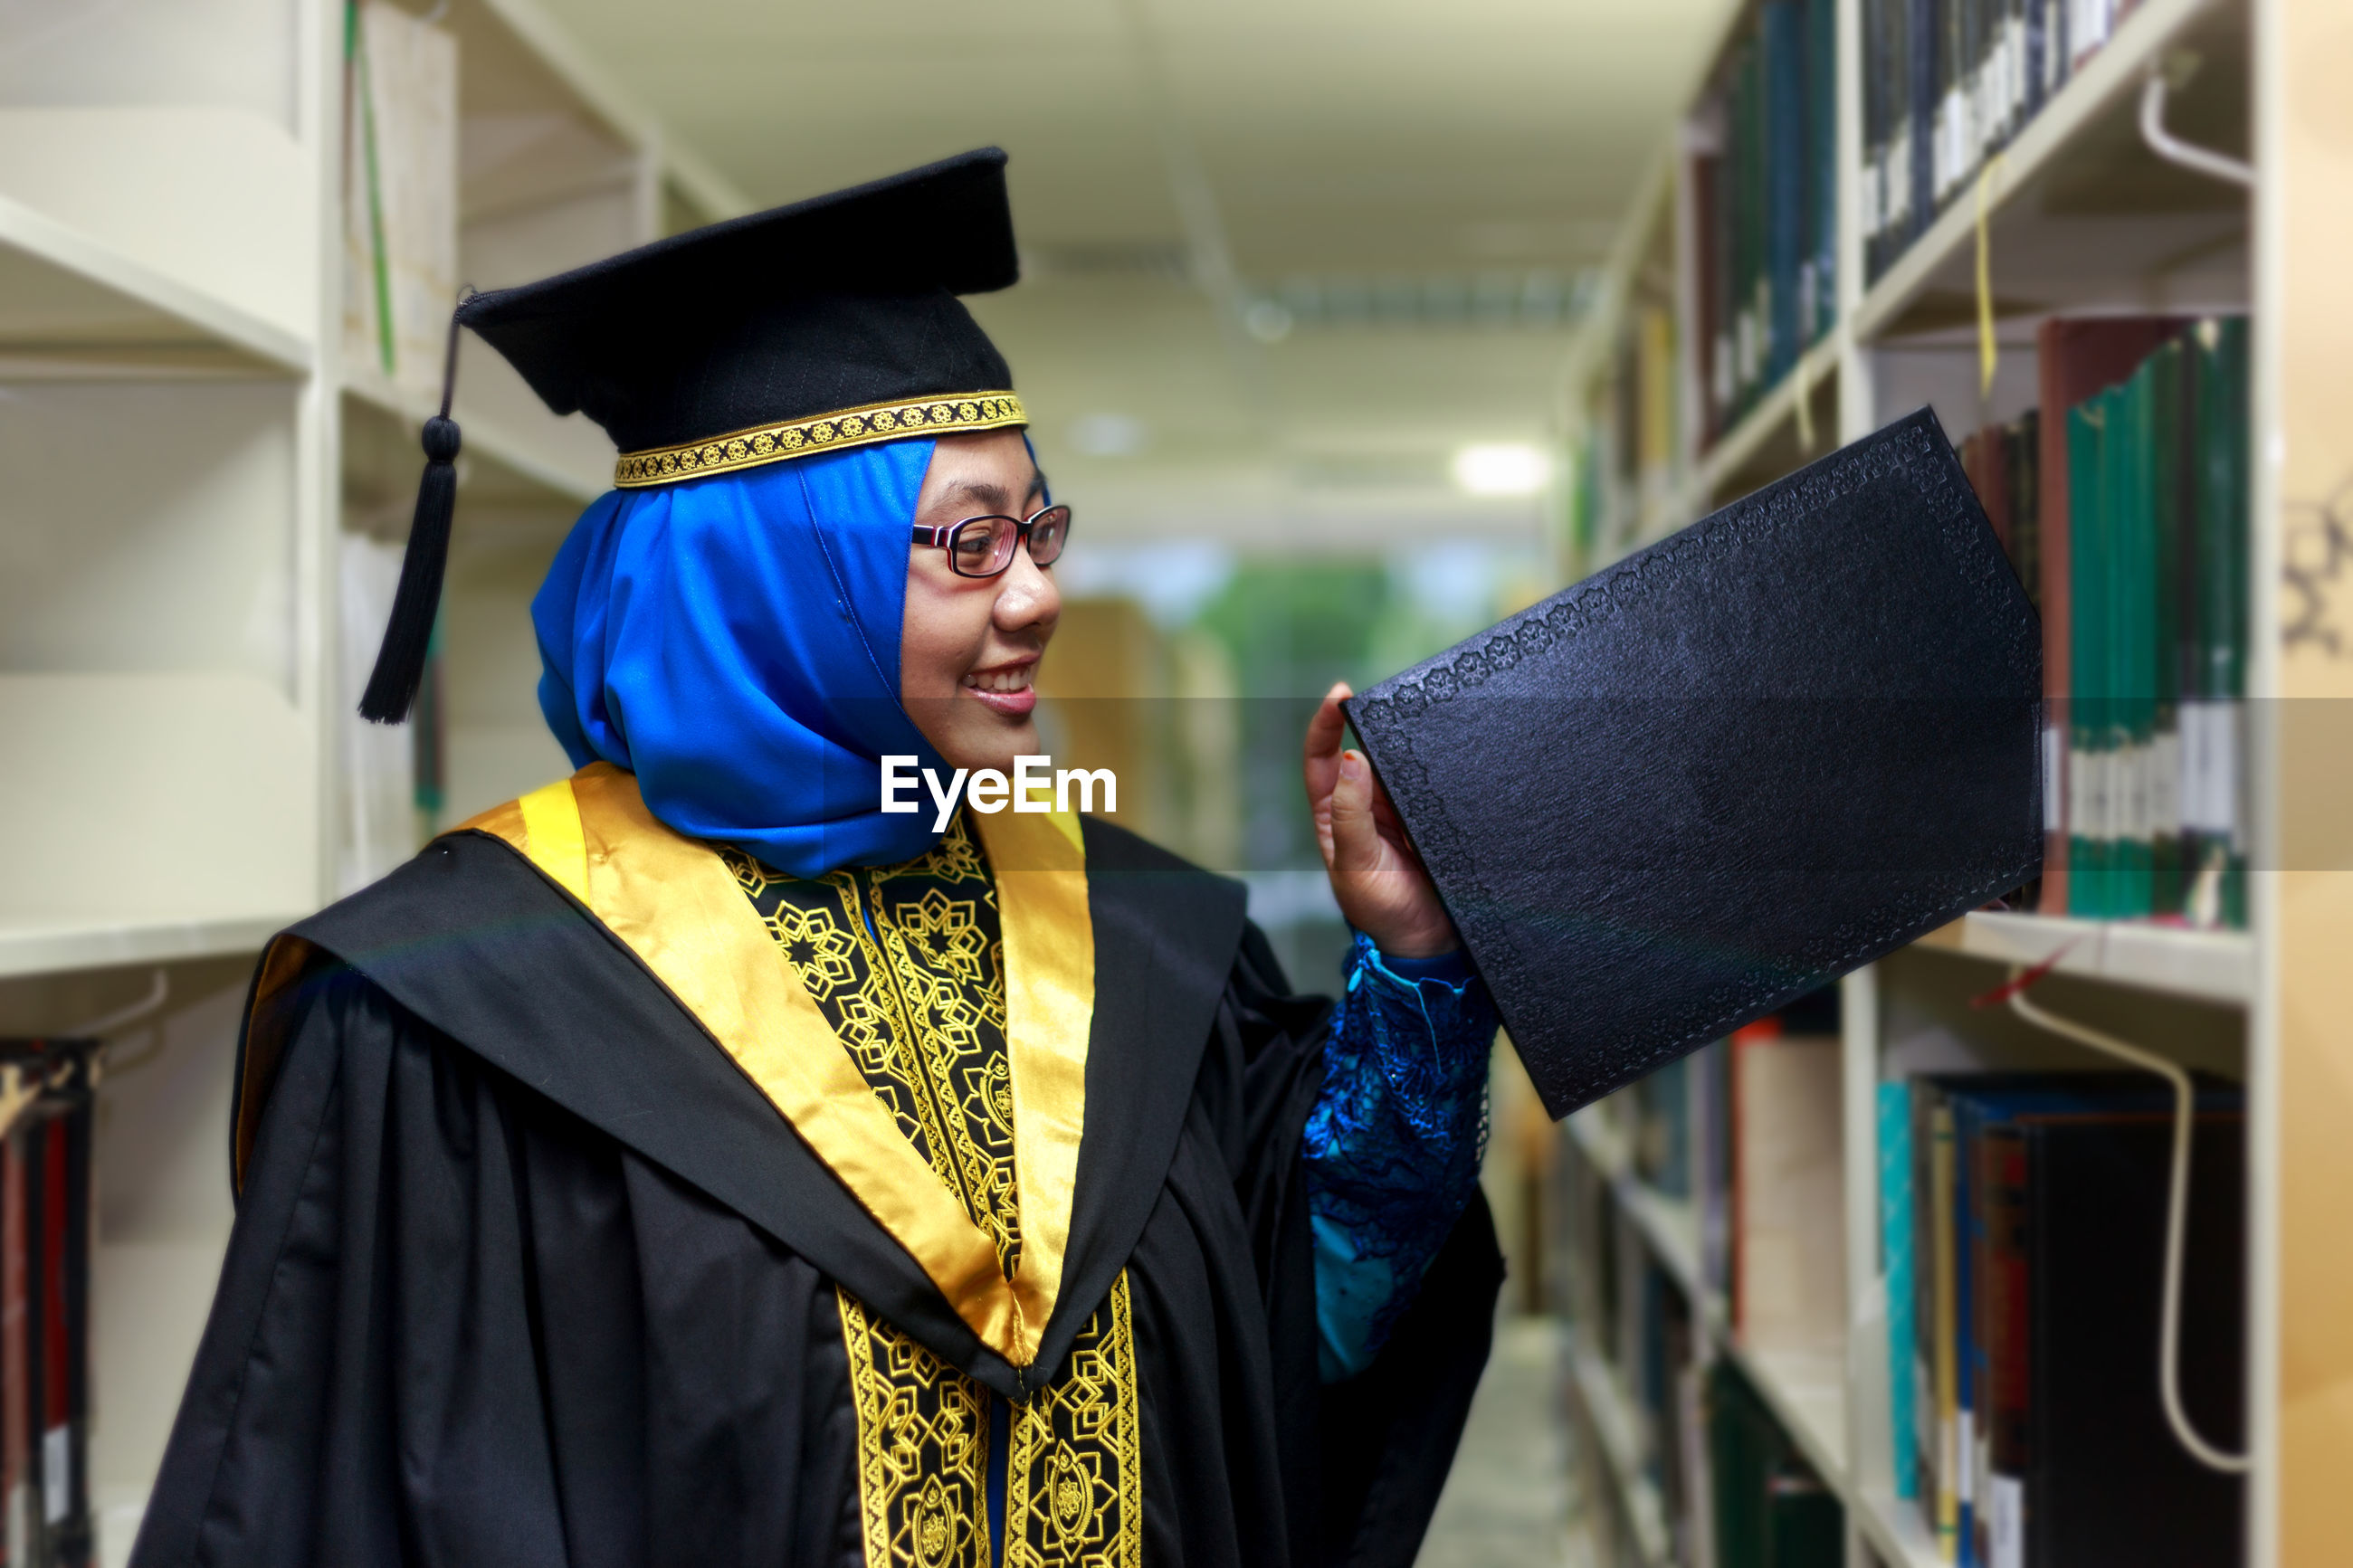 Young woman wearing graduation gown putting book on shelf in library